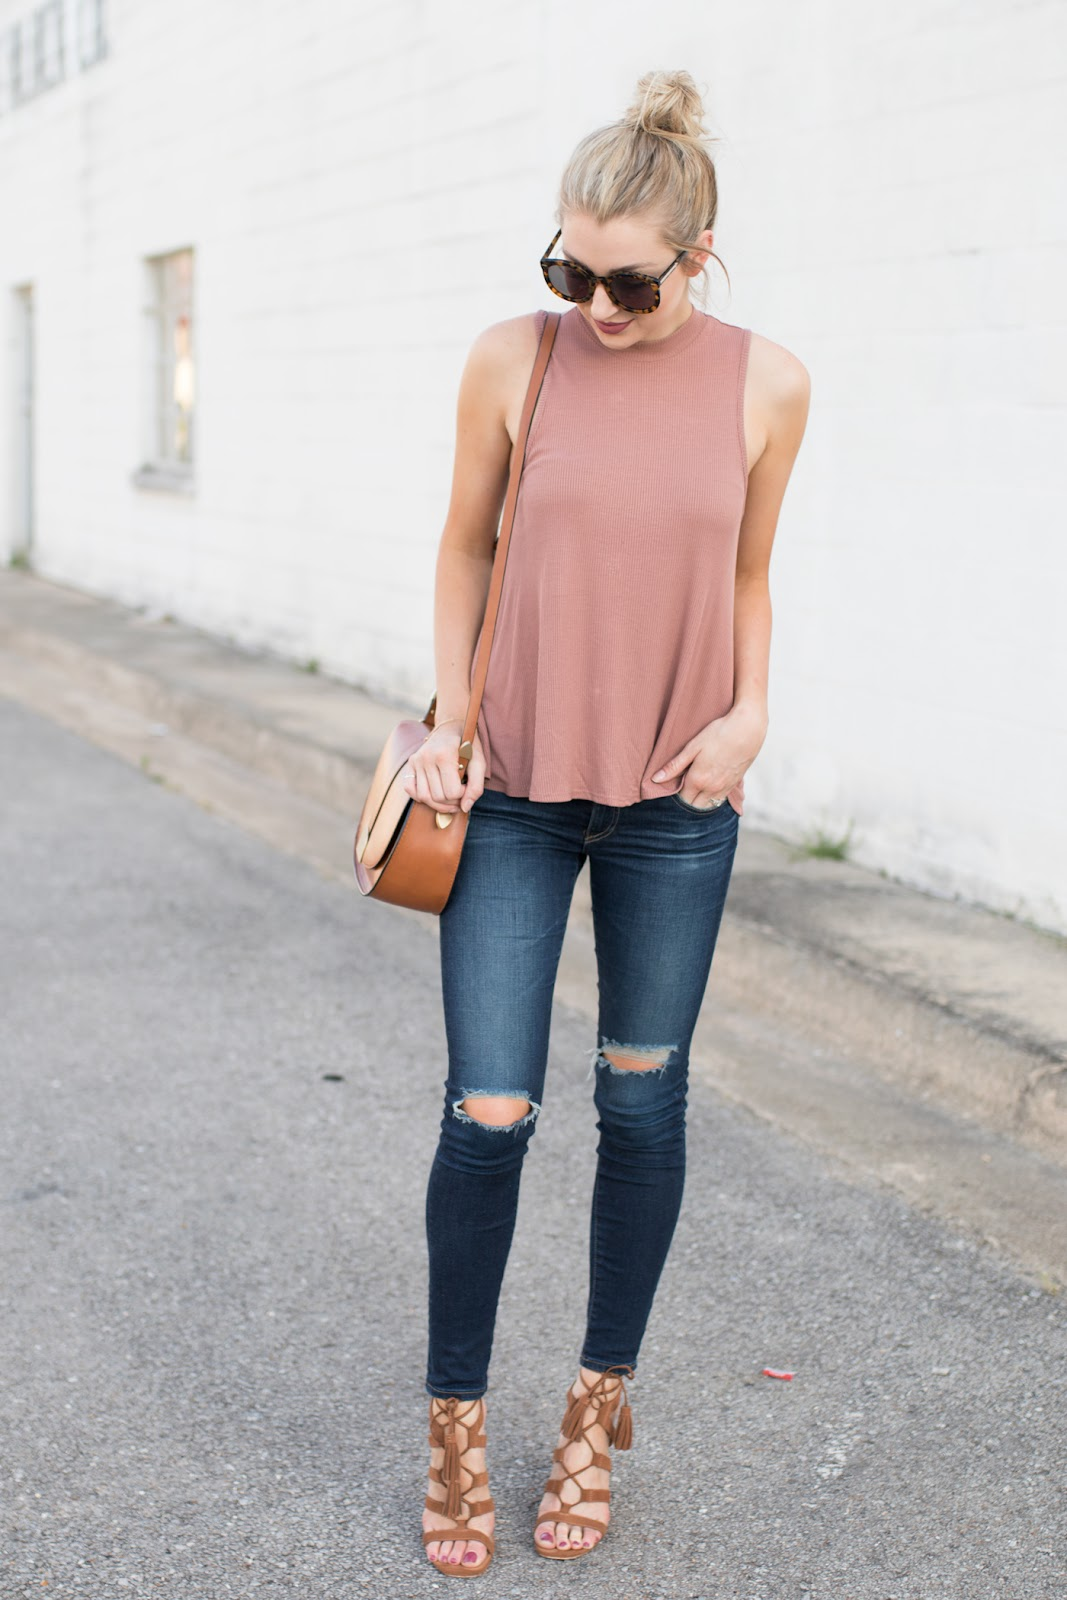 Casual spring-to-summer outfit